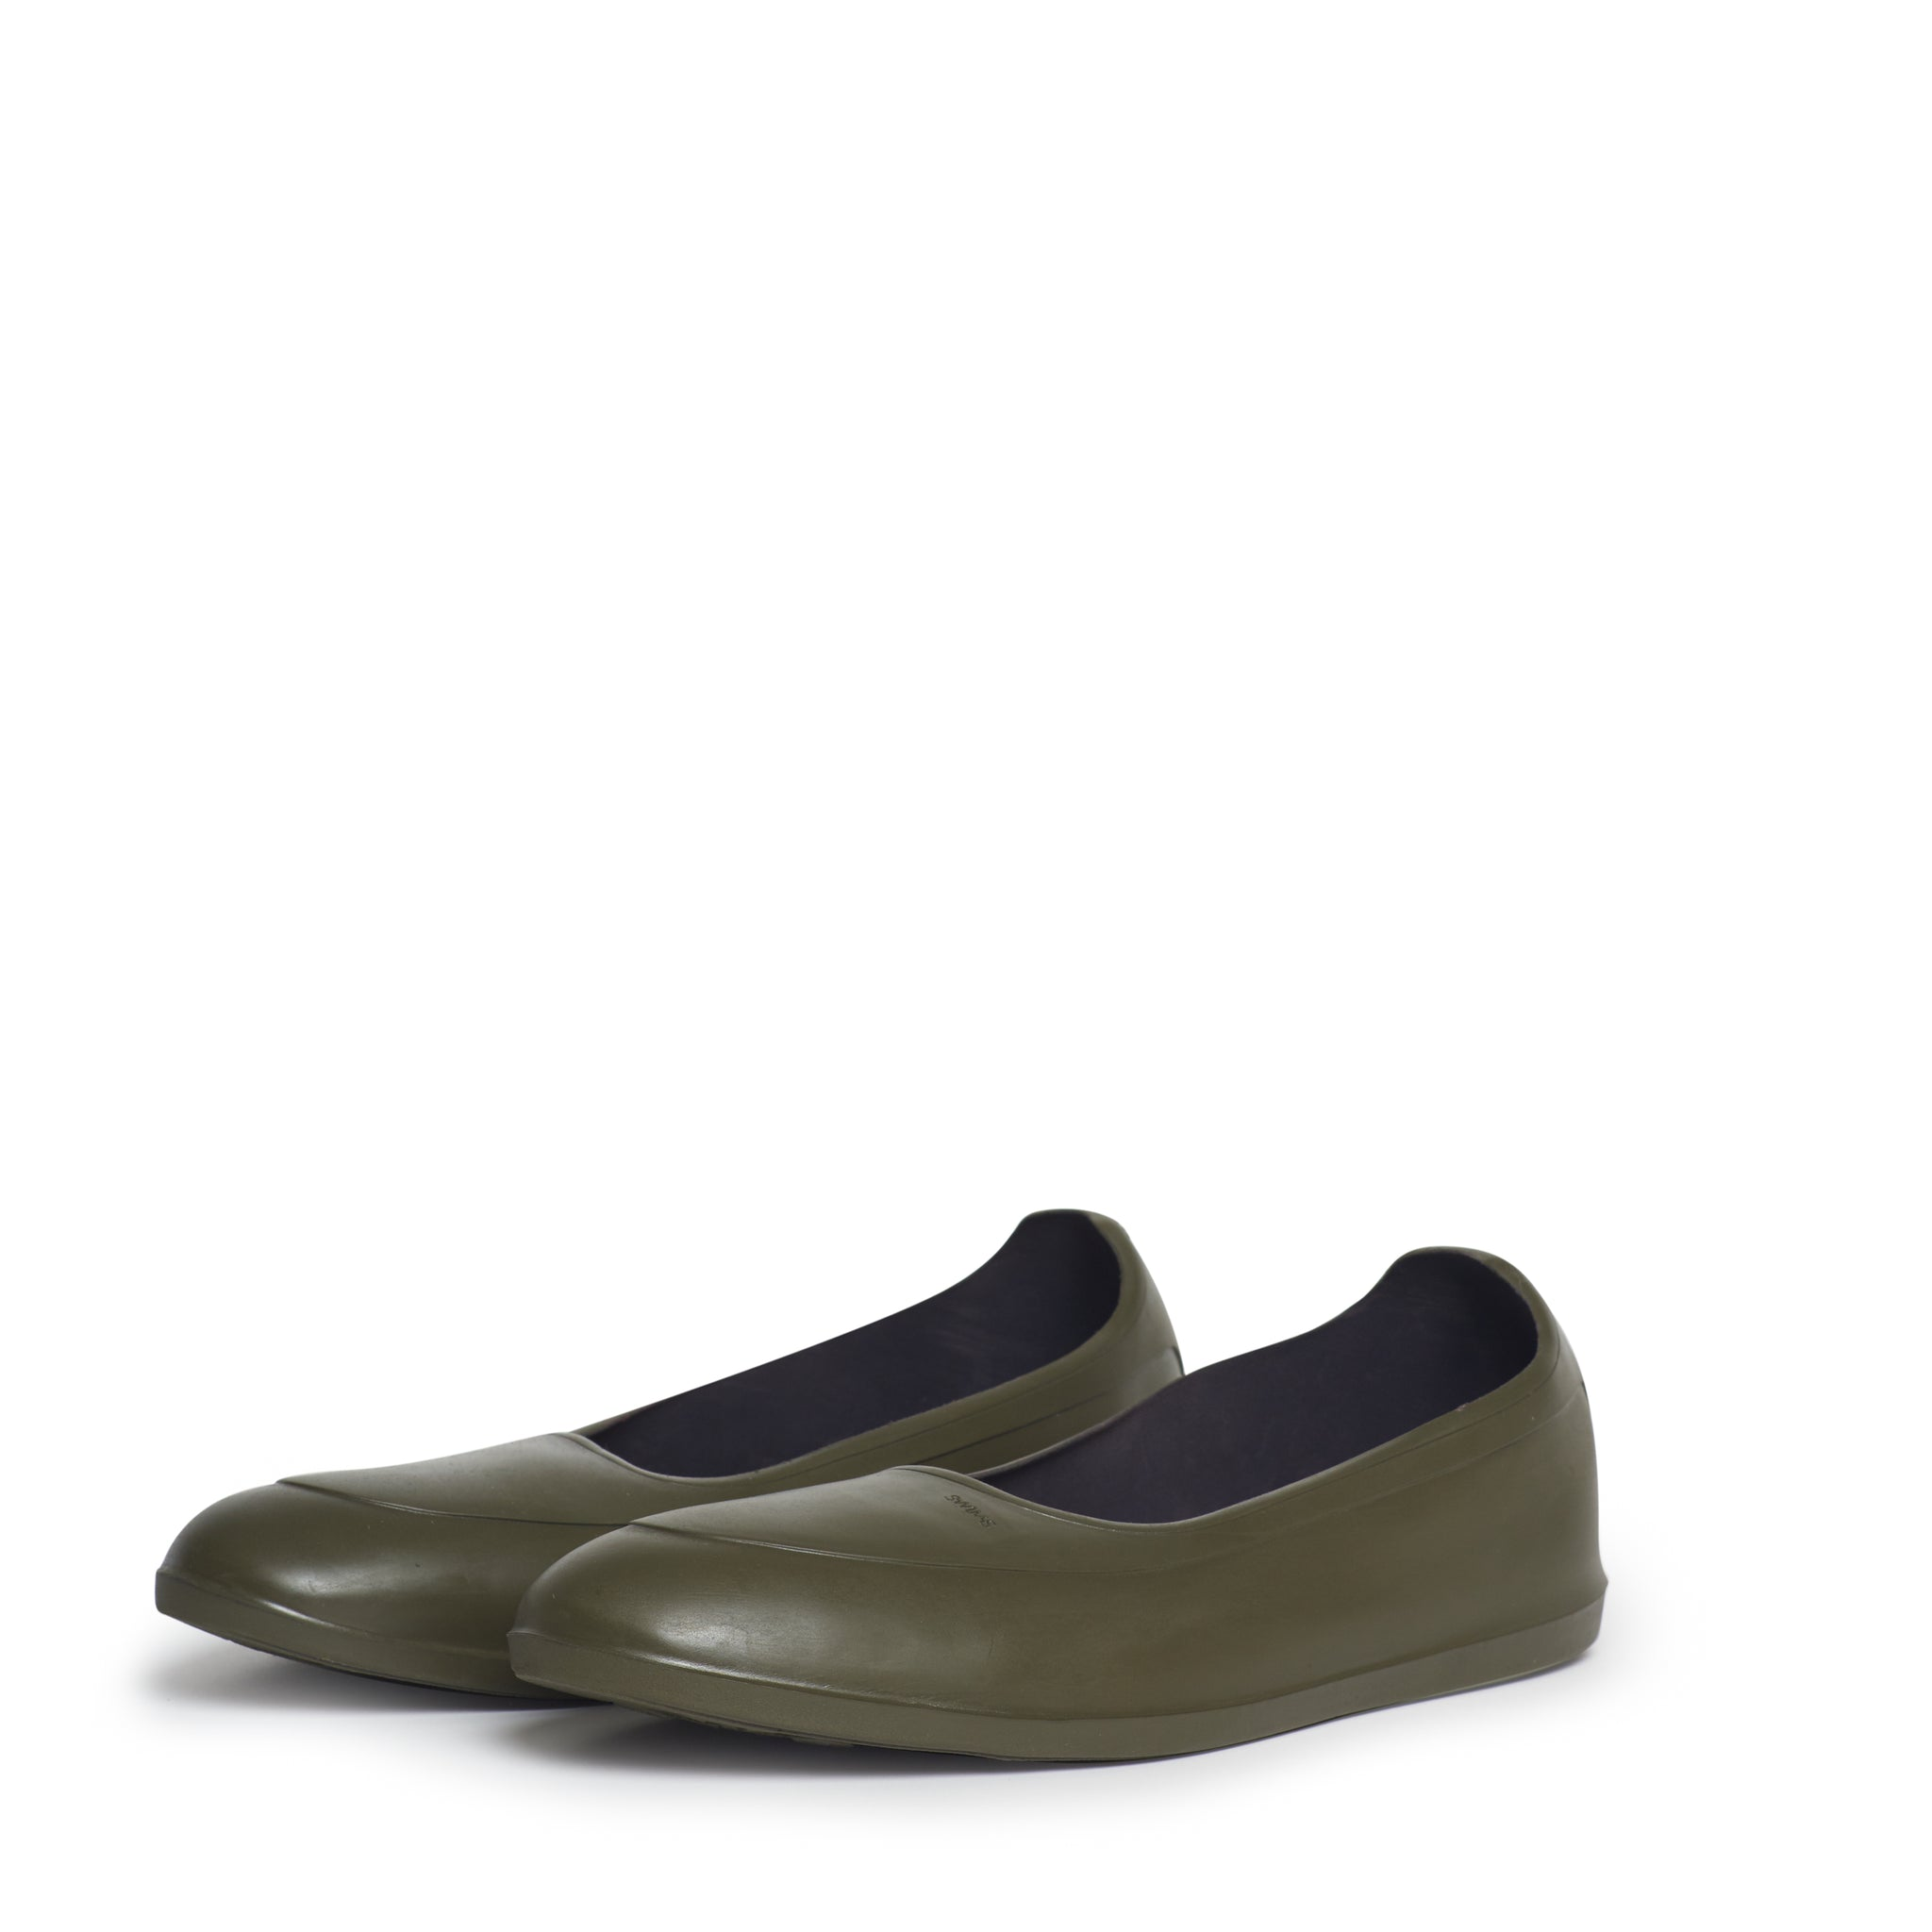 NUEVO! Cubrezapatos lluvia Olive by Swims